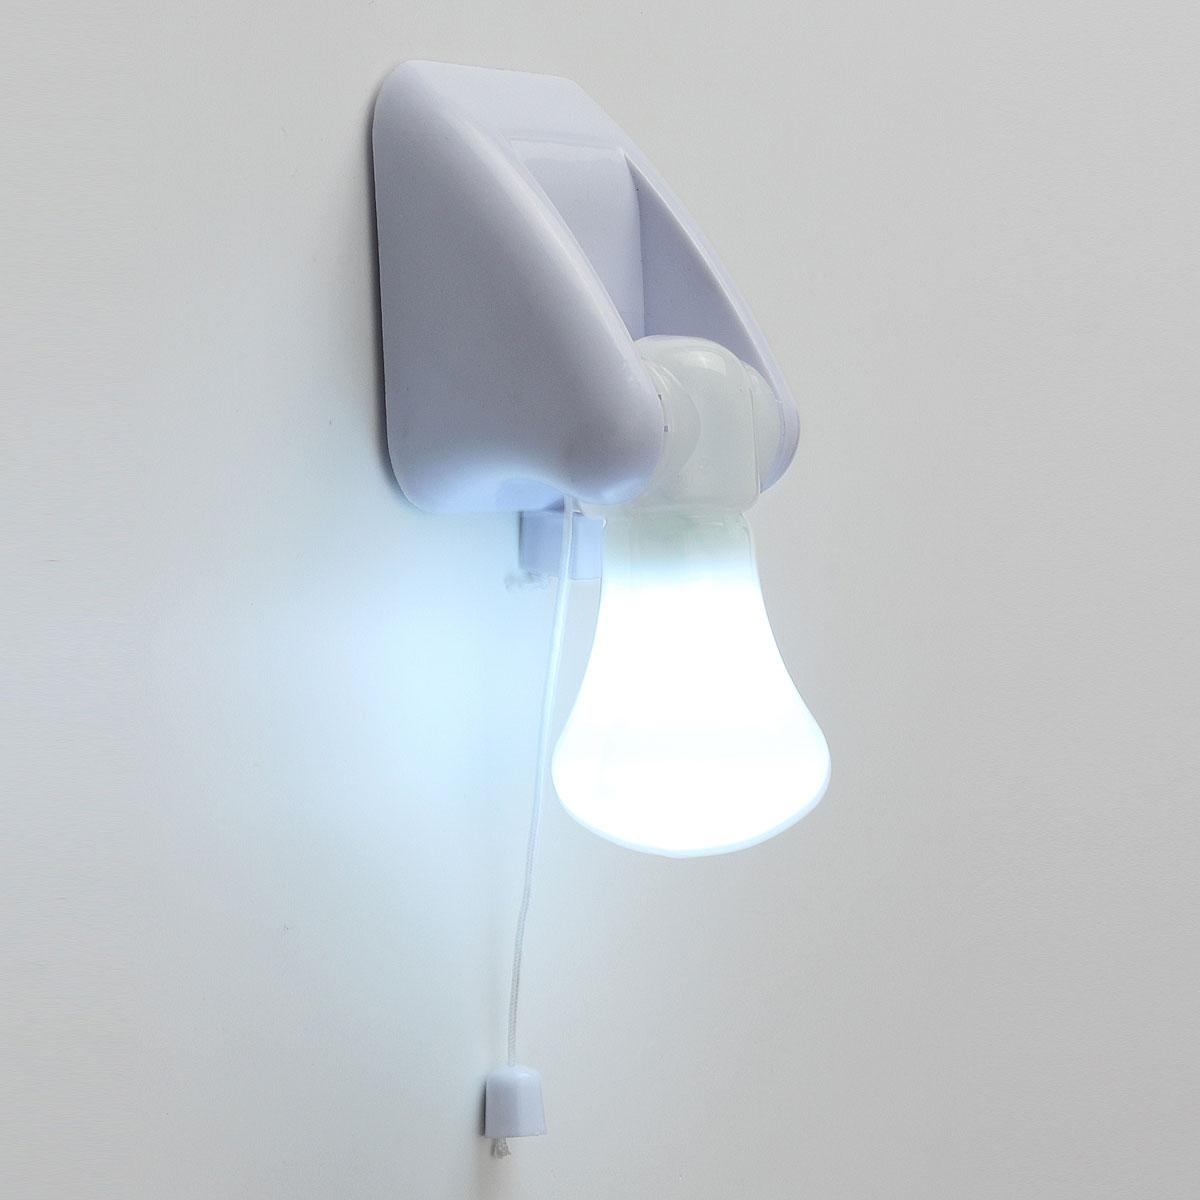 2019 Portable Pull Cord Led Wall Light Bulb Cabinet Closet Lamp Night Battery Operated Self Adhesive Hallway Bedroom Lighting From Dard